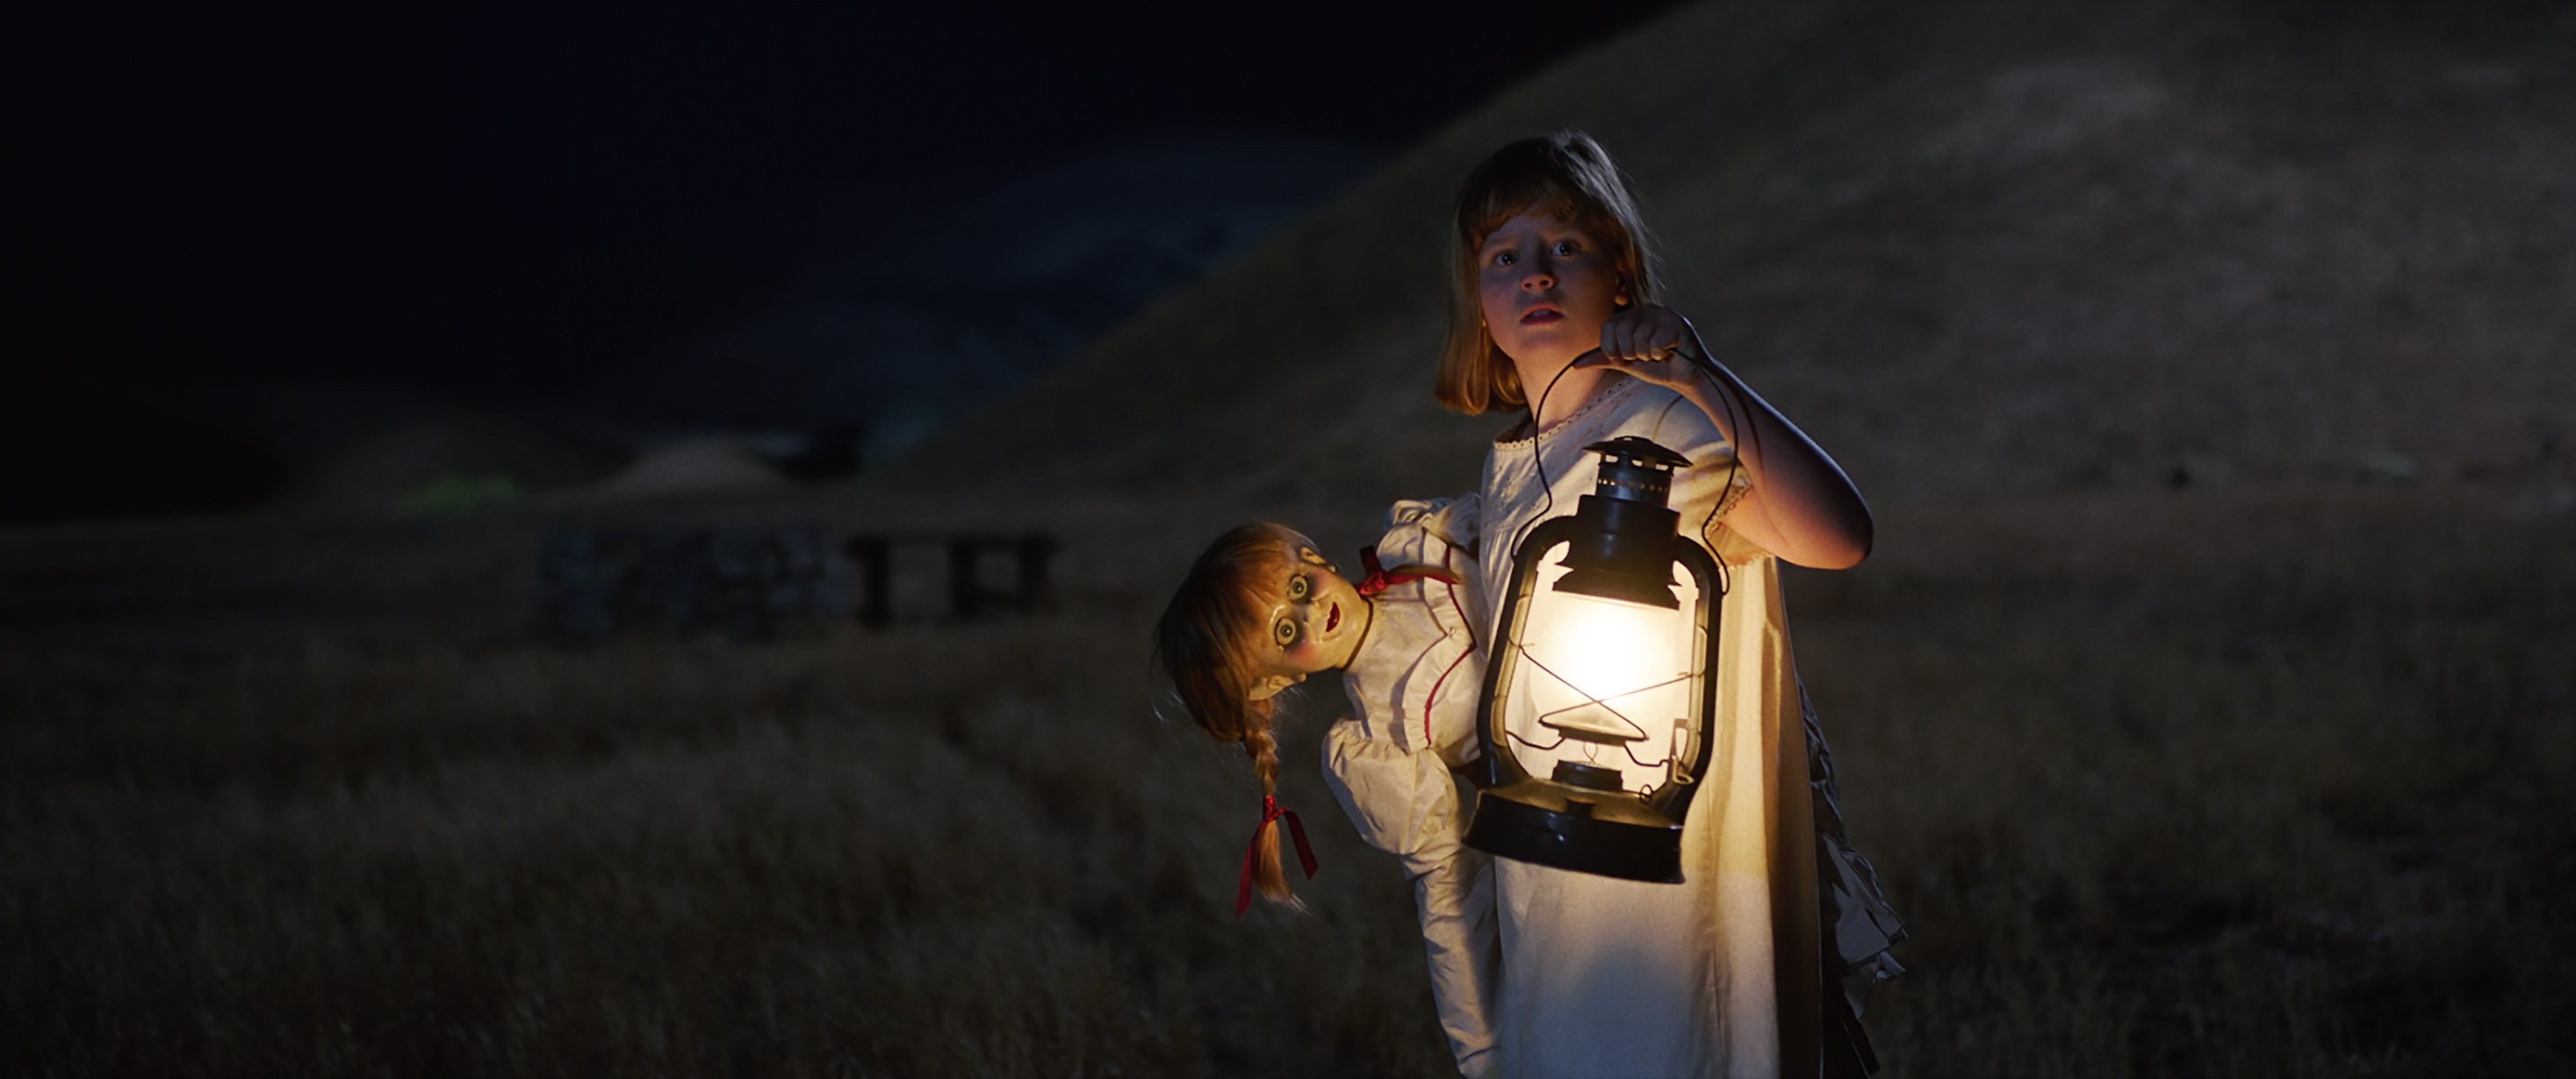 Annabelle: Creation courtesy of Warner Bros. Pictures